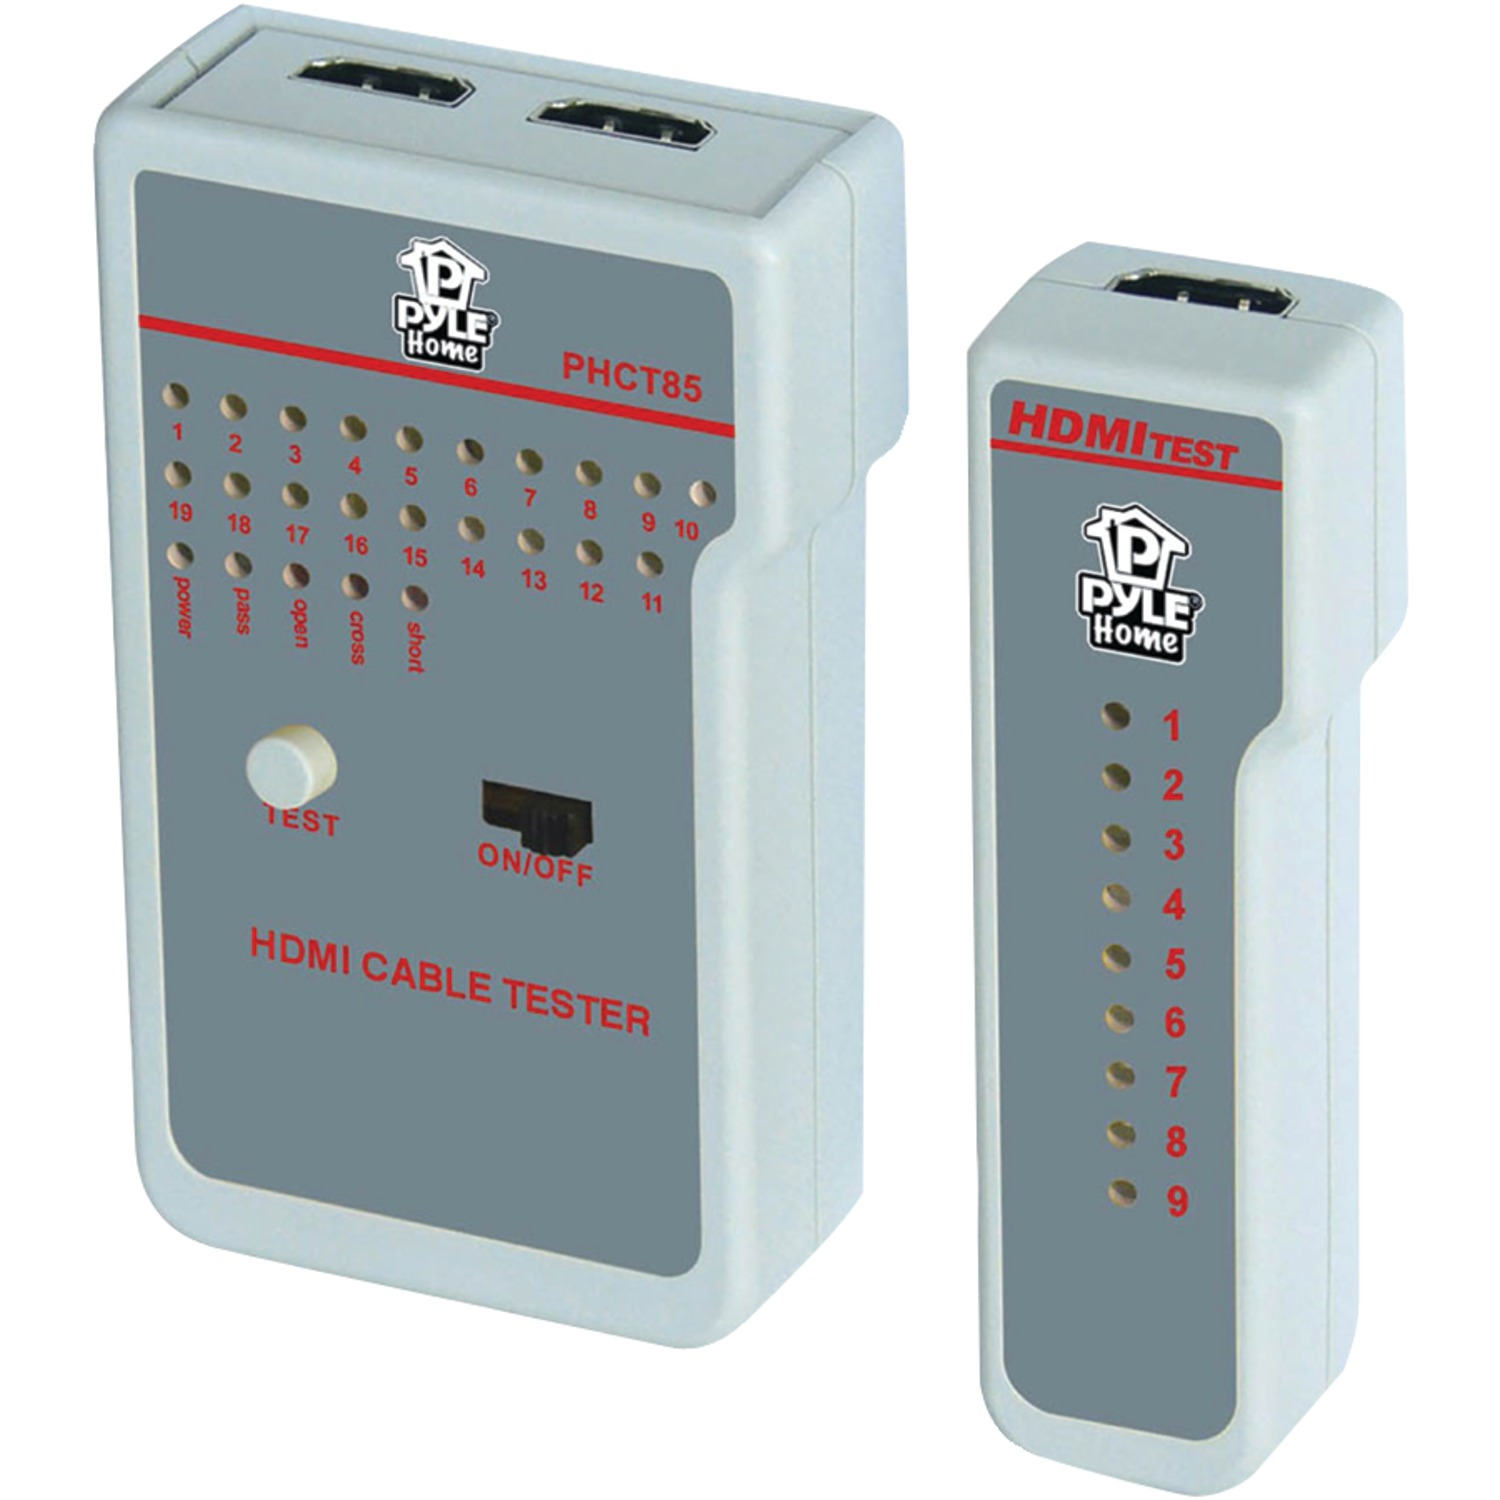 Hdmi Cable Tester : Pyle phct hdmi r hd cable tester